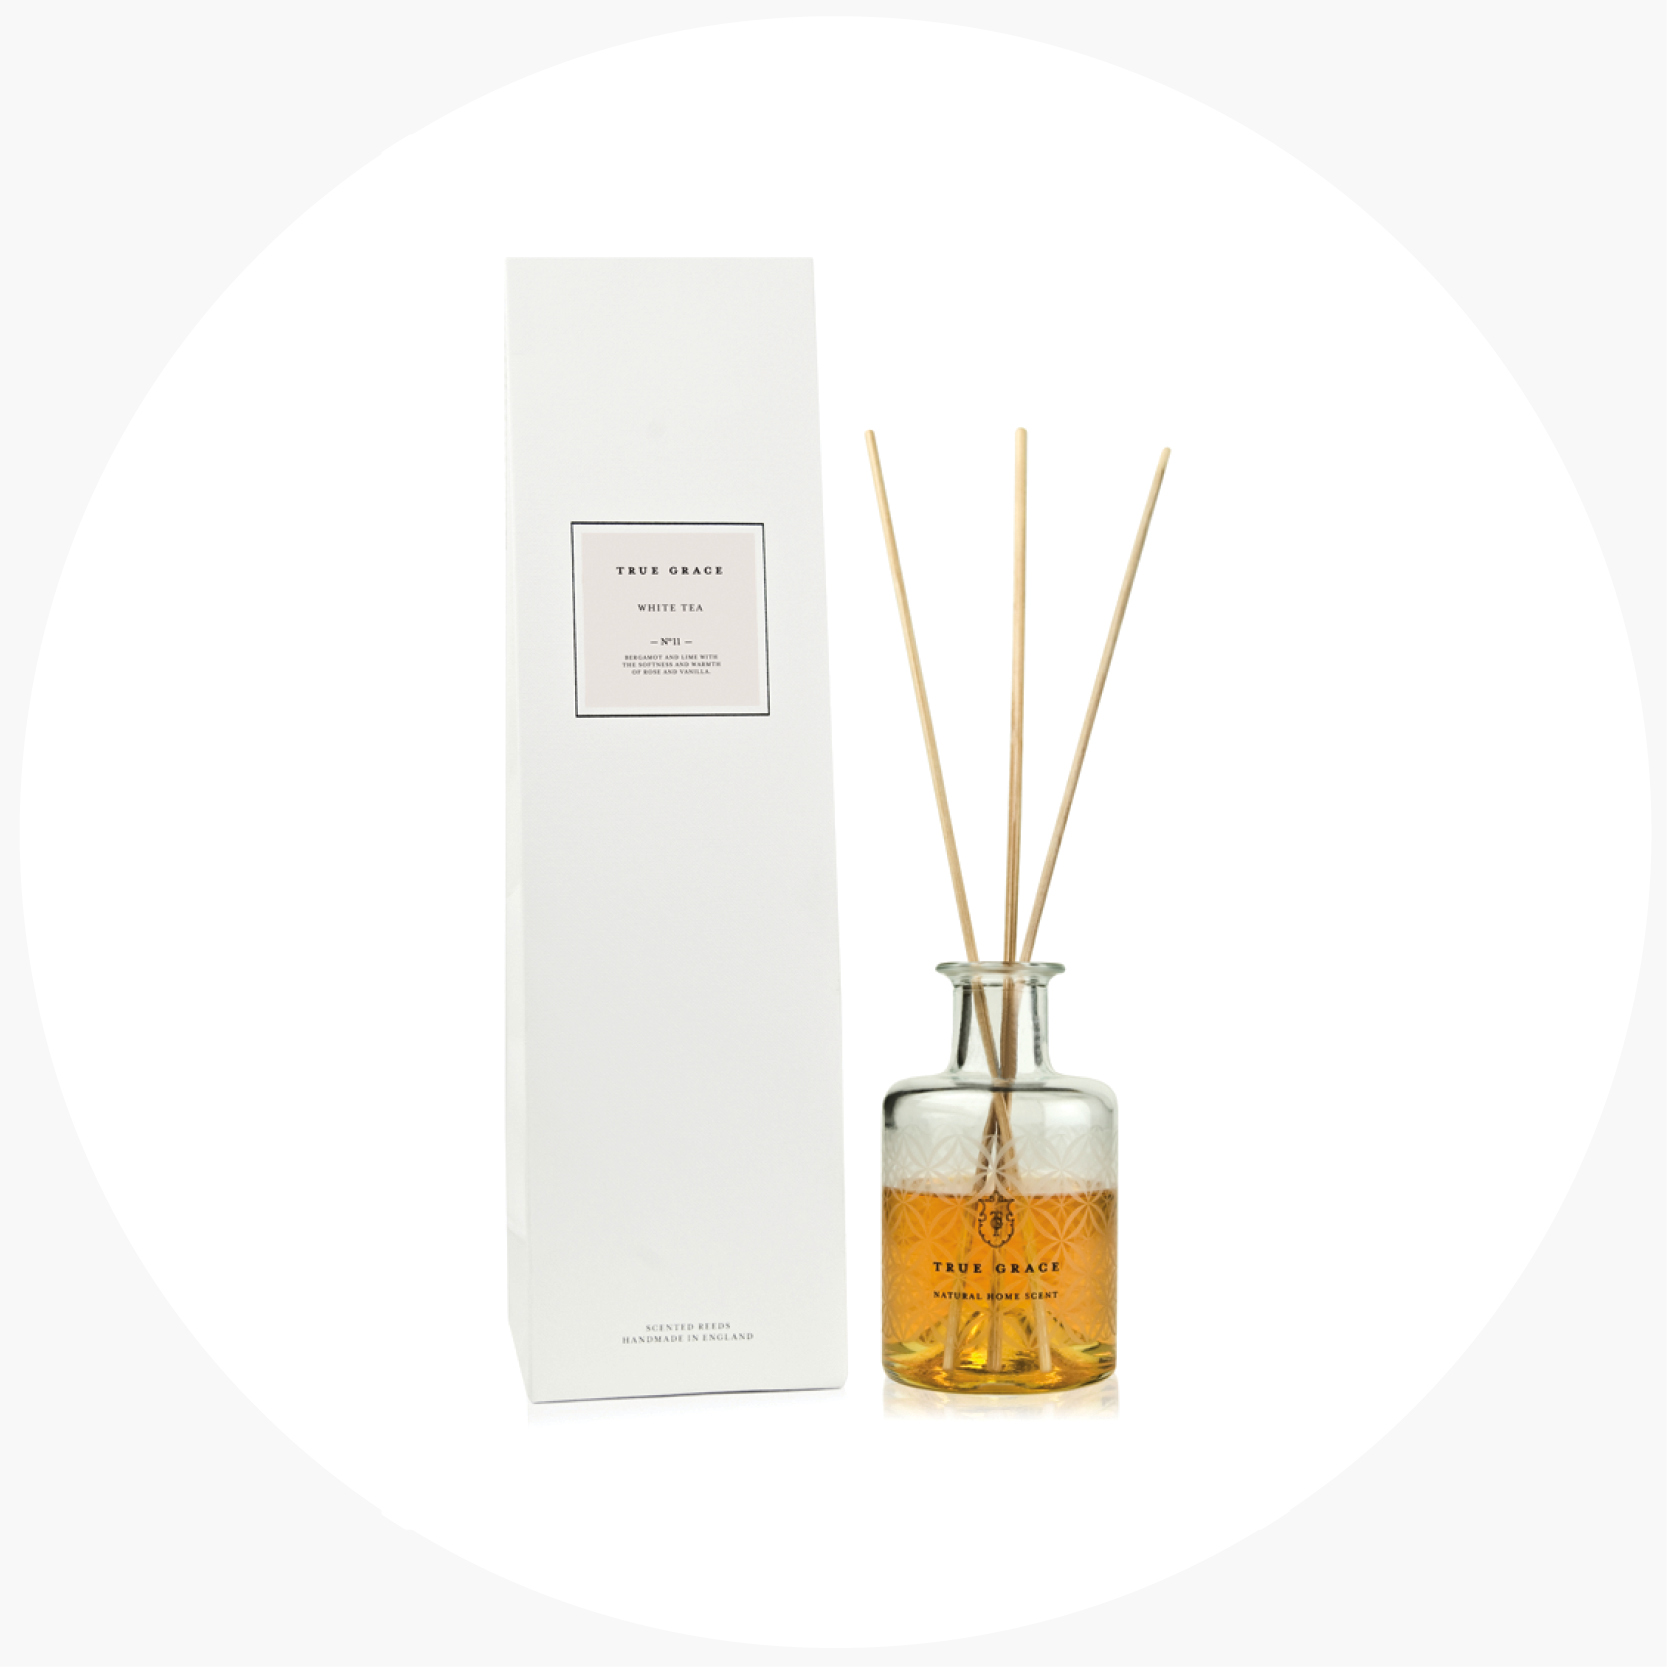 5   something smelly   .   true grace diffuser   $79.90